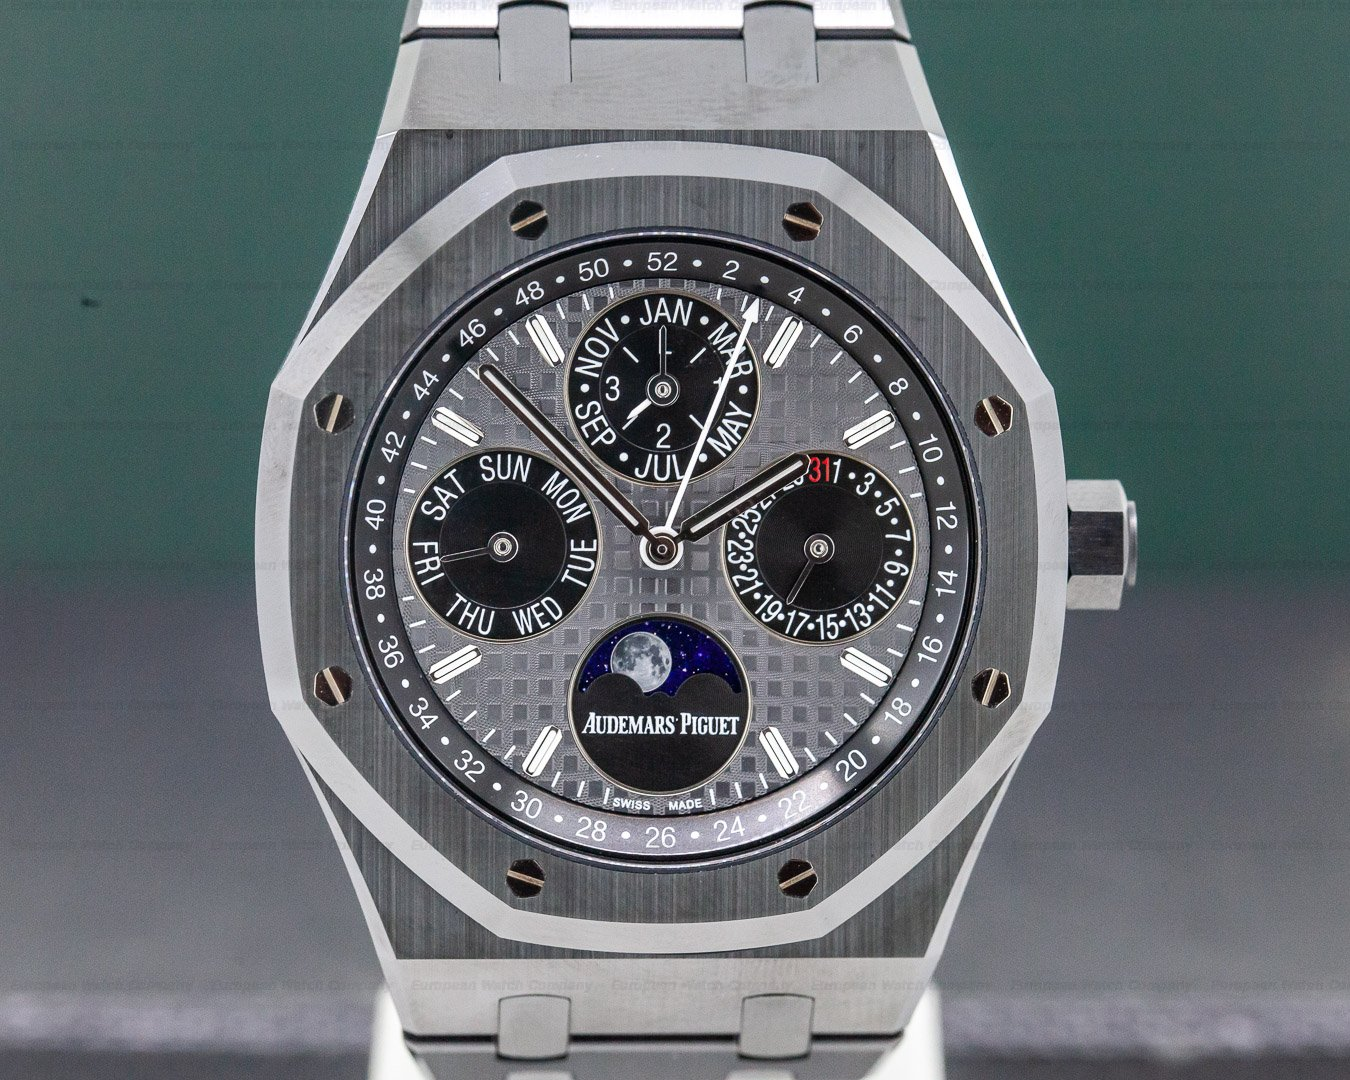 Audemars Piguet 26579CE.OO.1225CE.01 Royal Oak Perpetual Calendar Black Ceramic 41MM UNWORN